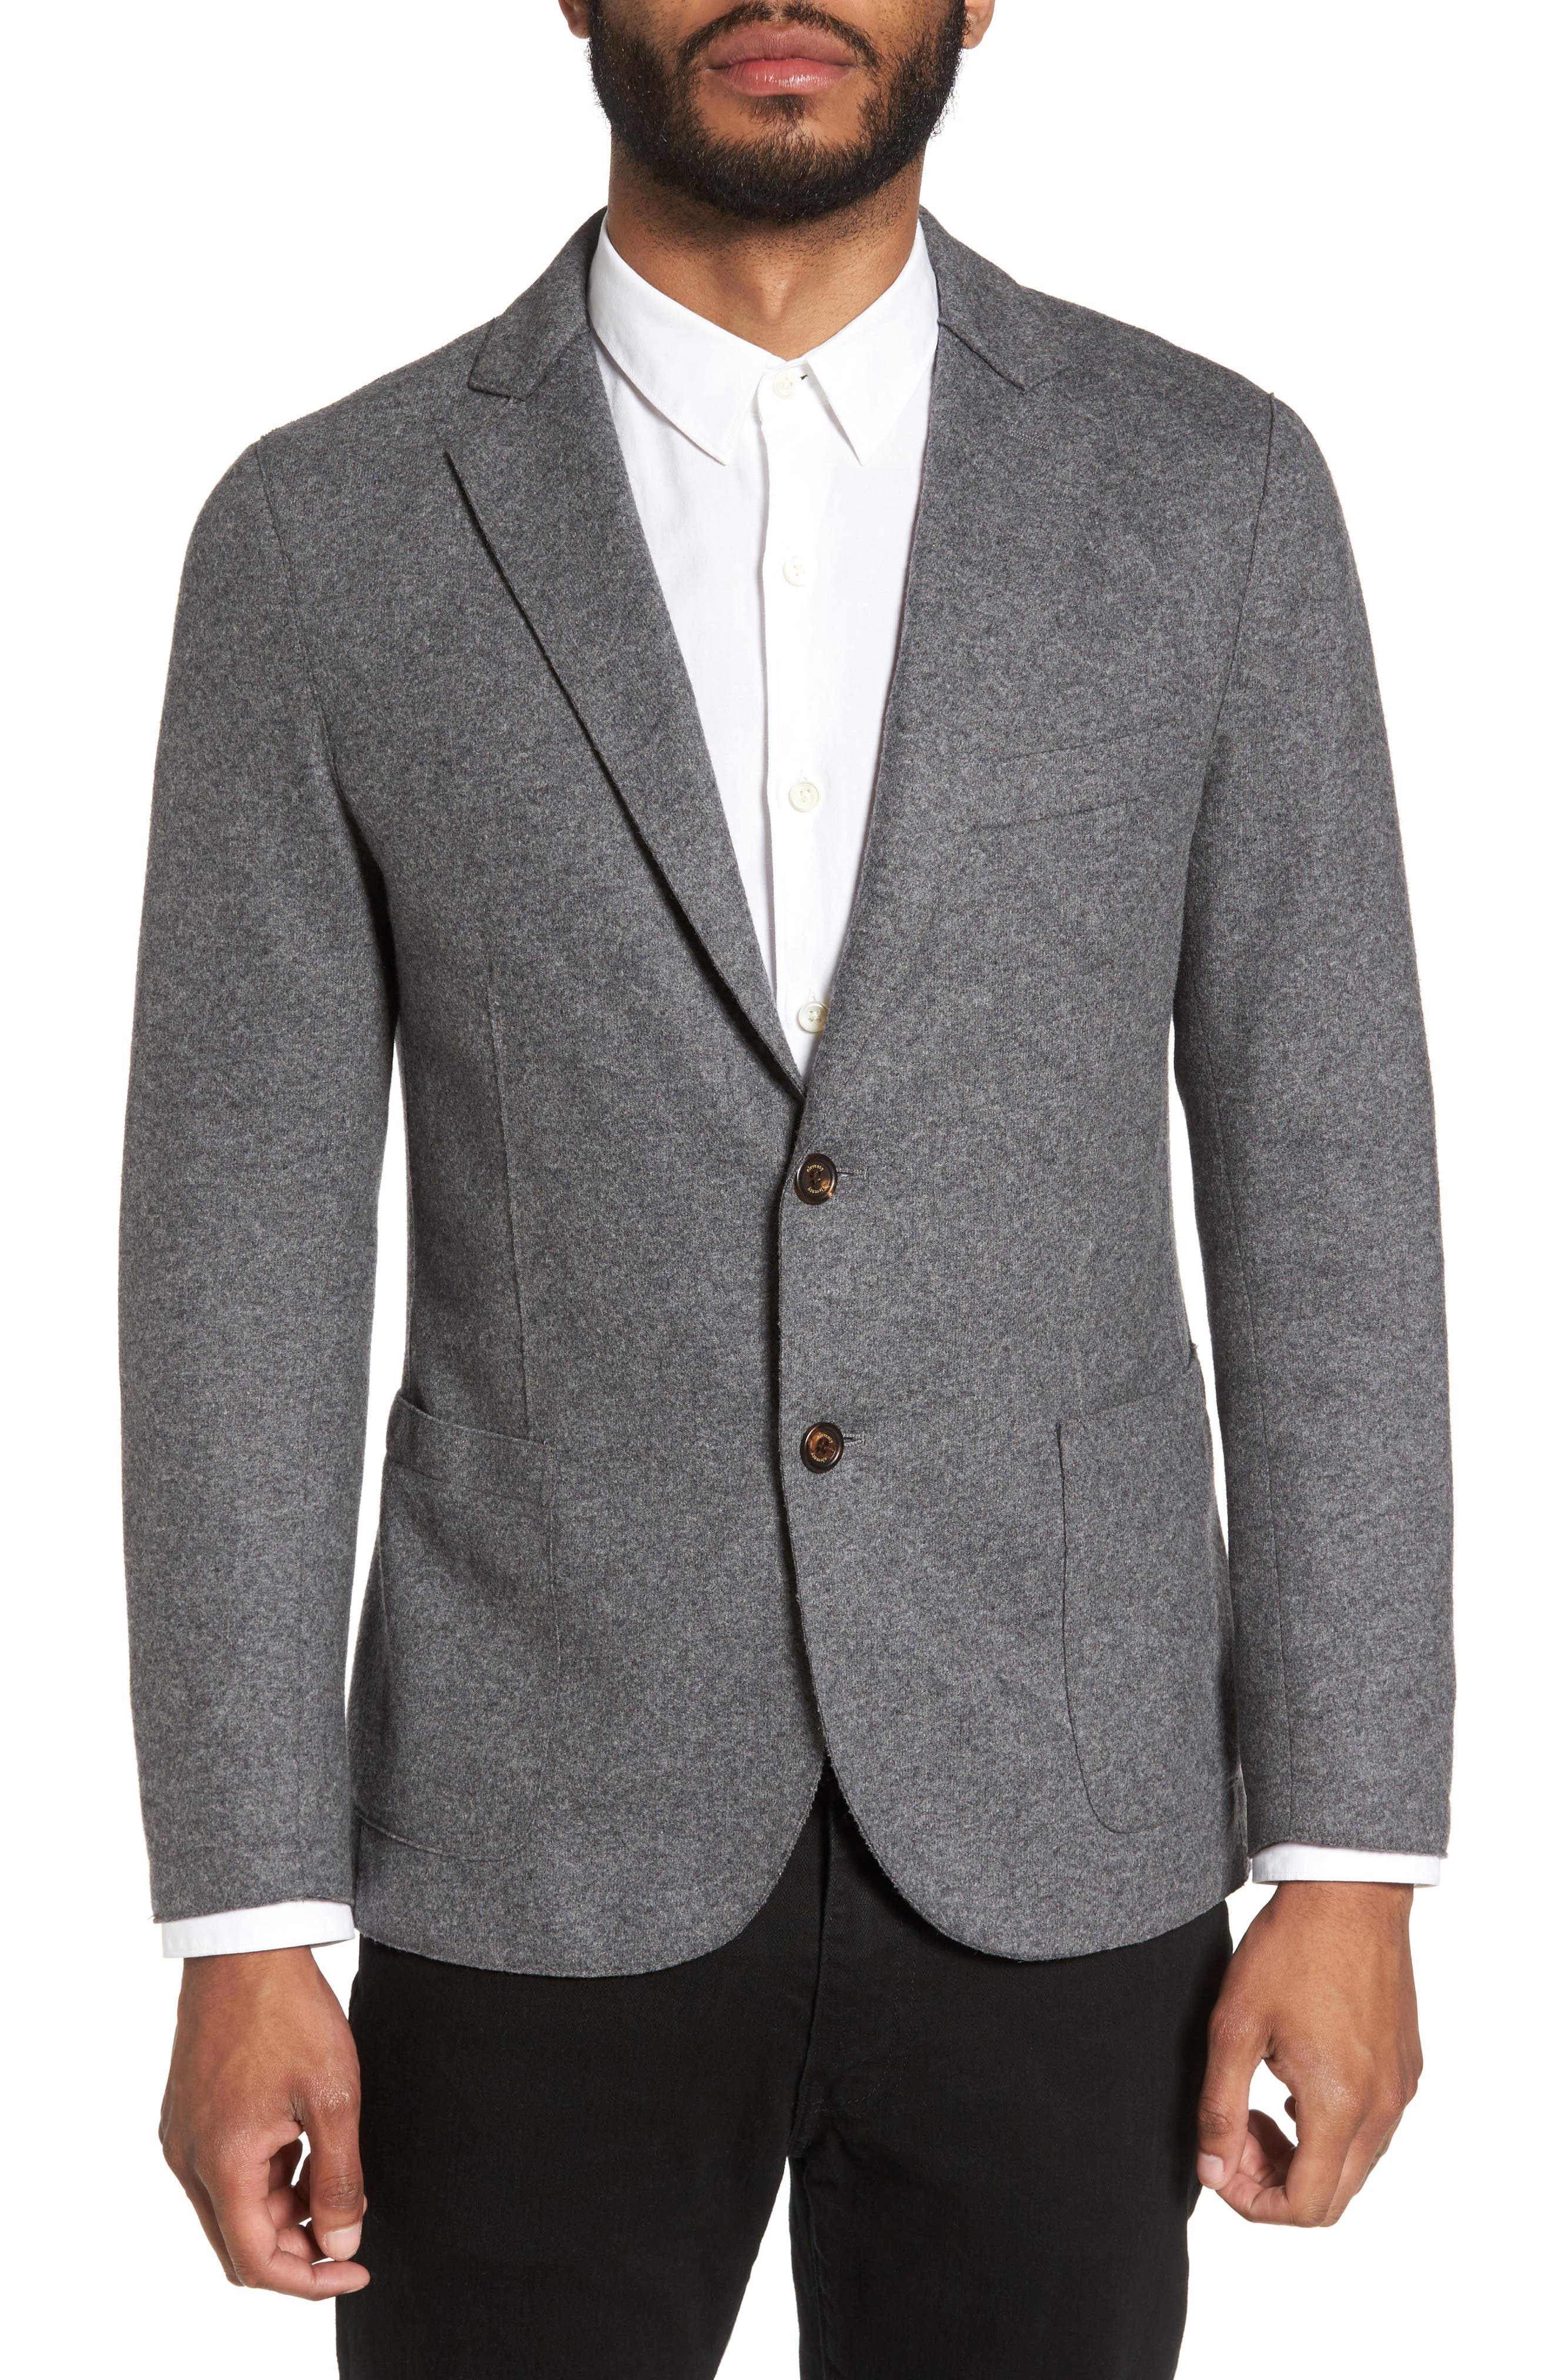 Wool Blend Blazer,                         Main,                         color, Smoke Grey Melange